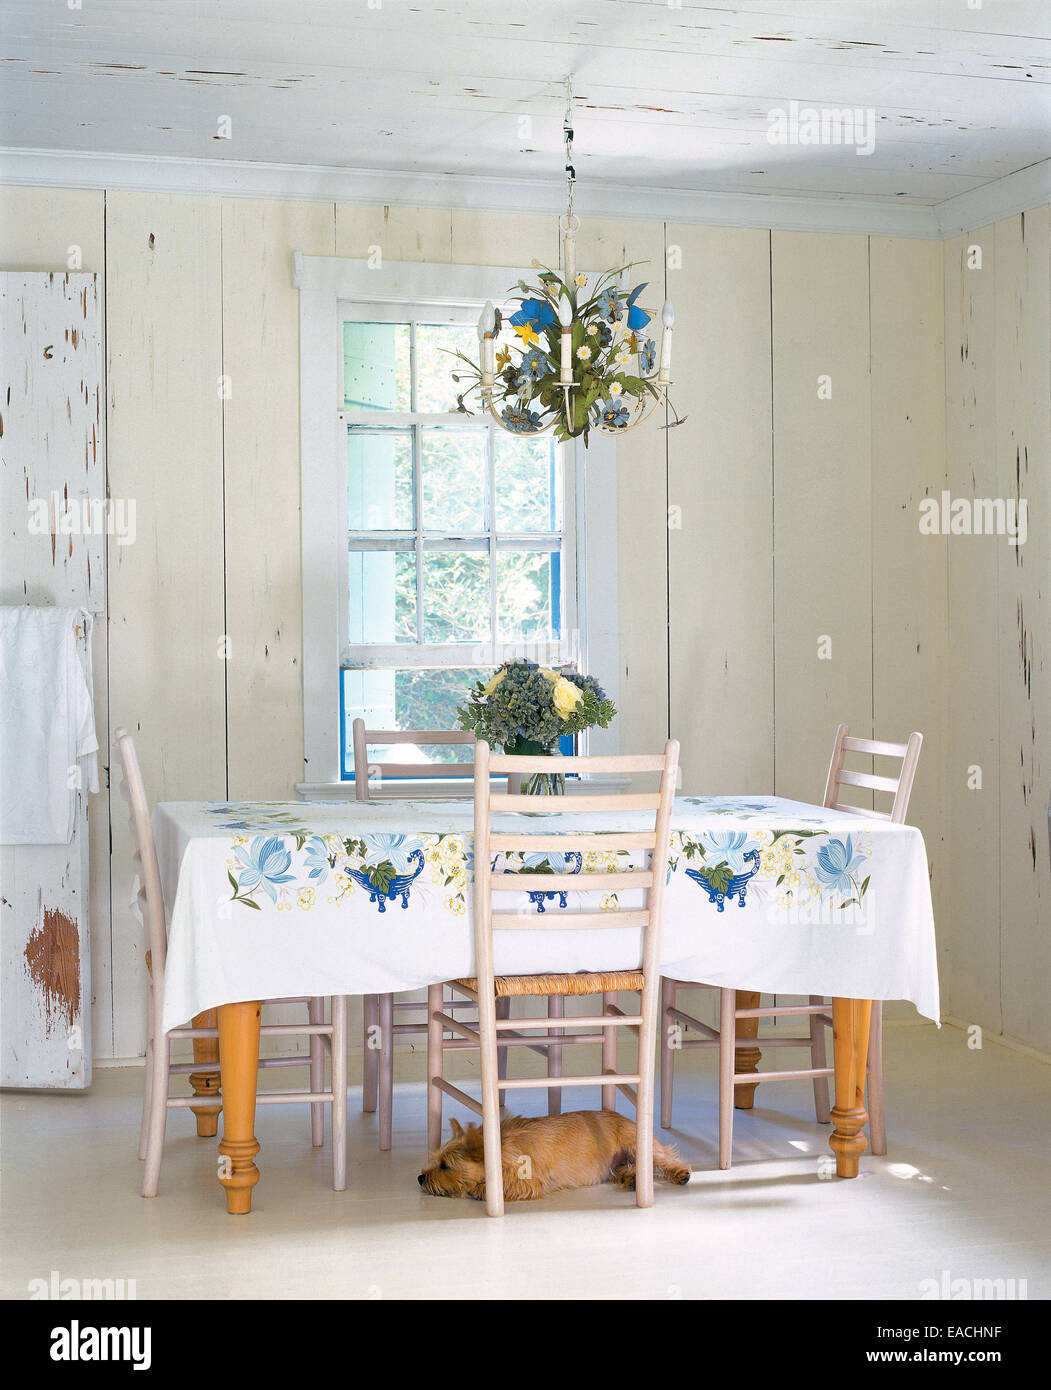 country dining table with dog under it - Stock Image